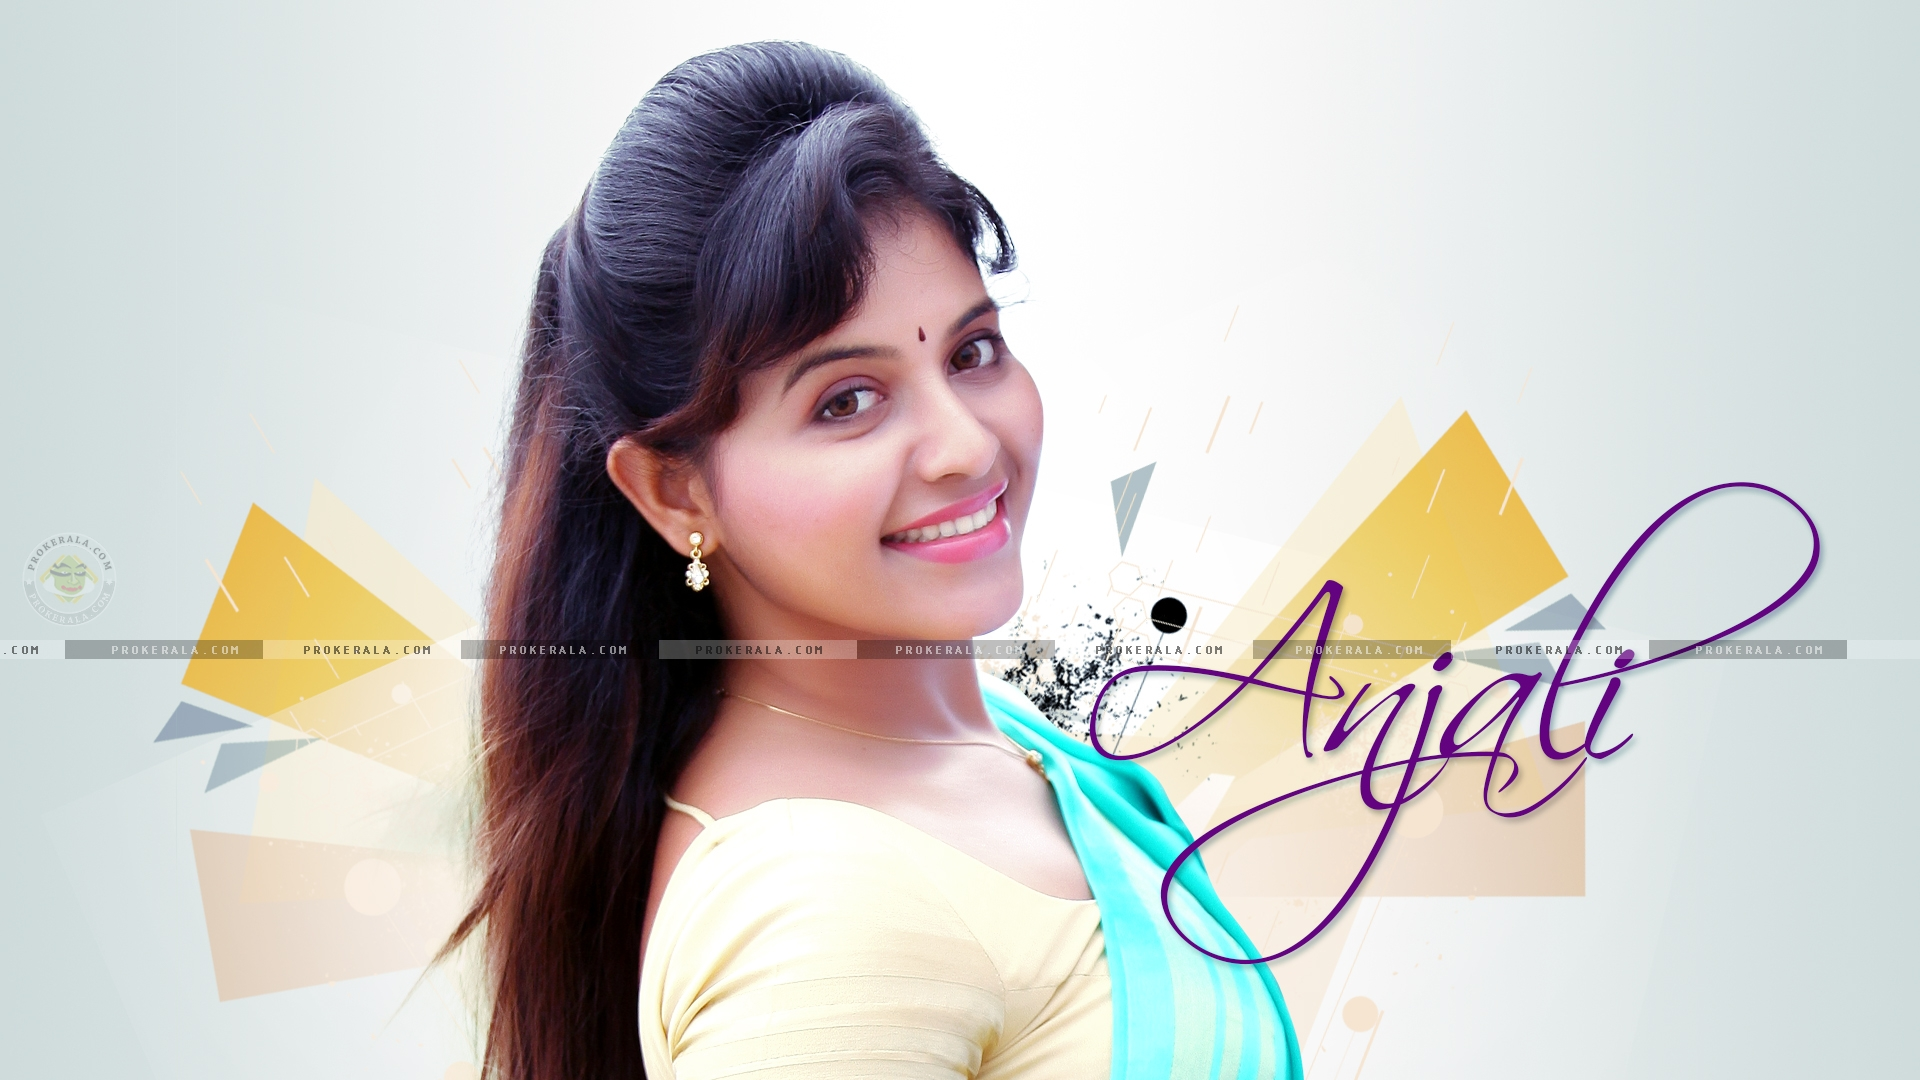 Anjali Actress hd wallpaper for download